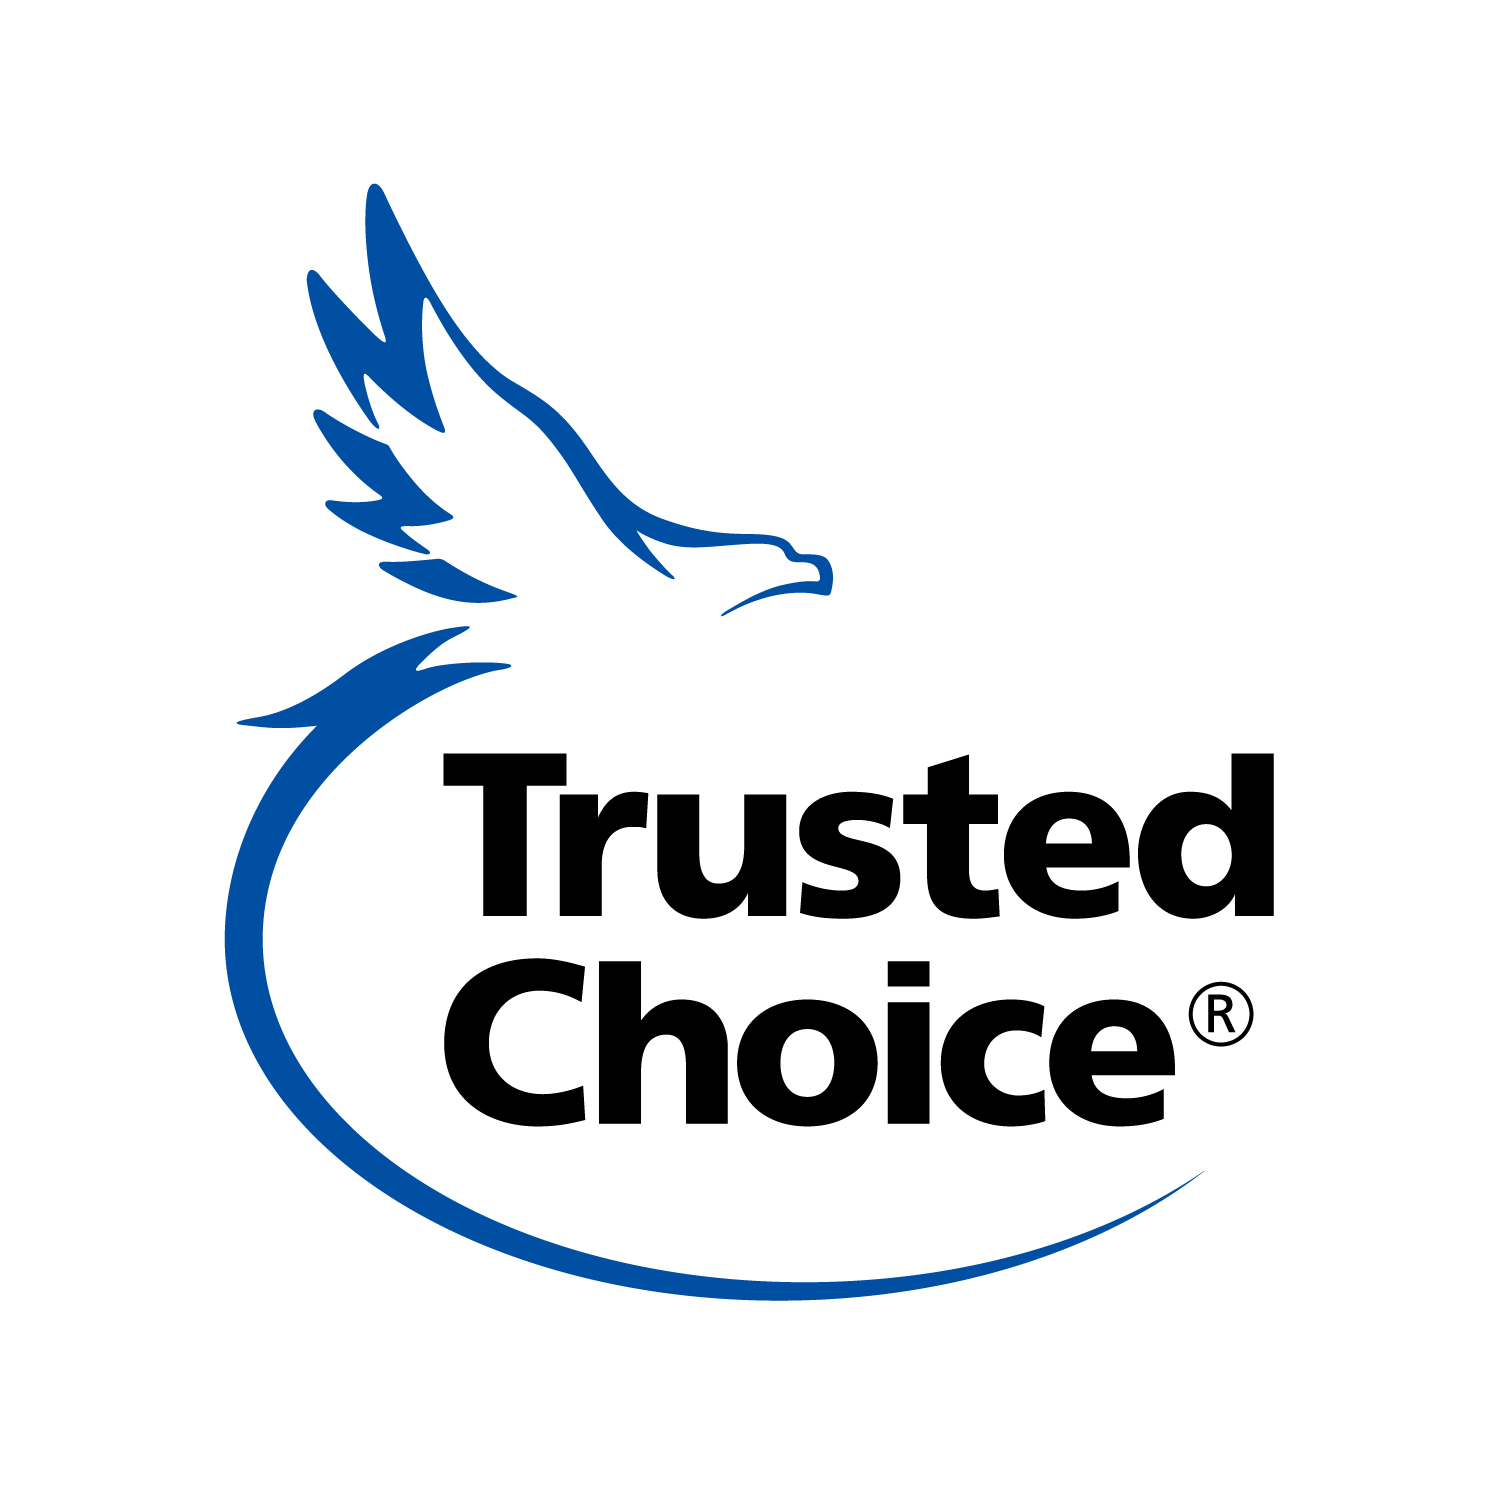 trusted choice.jpg